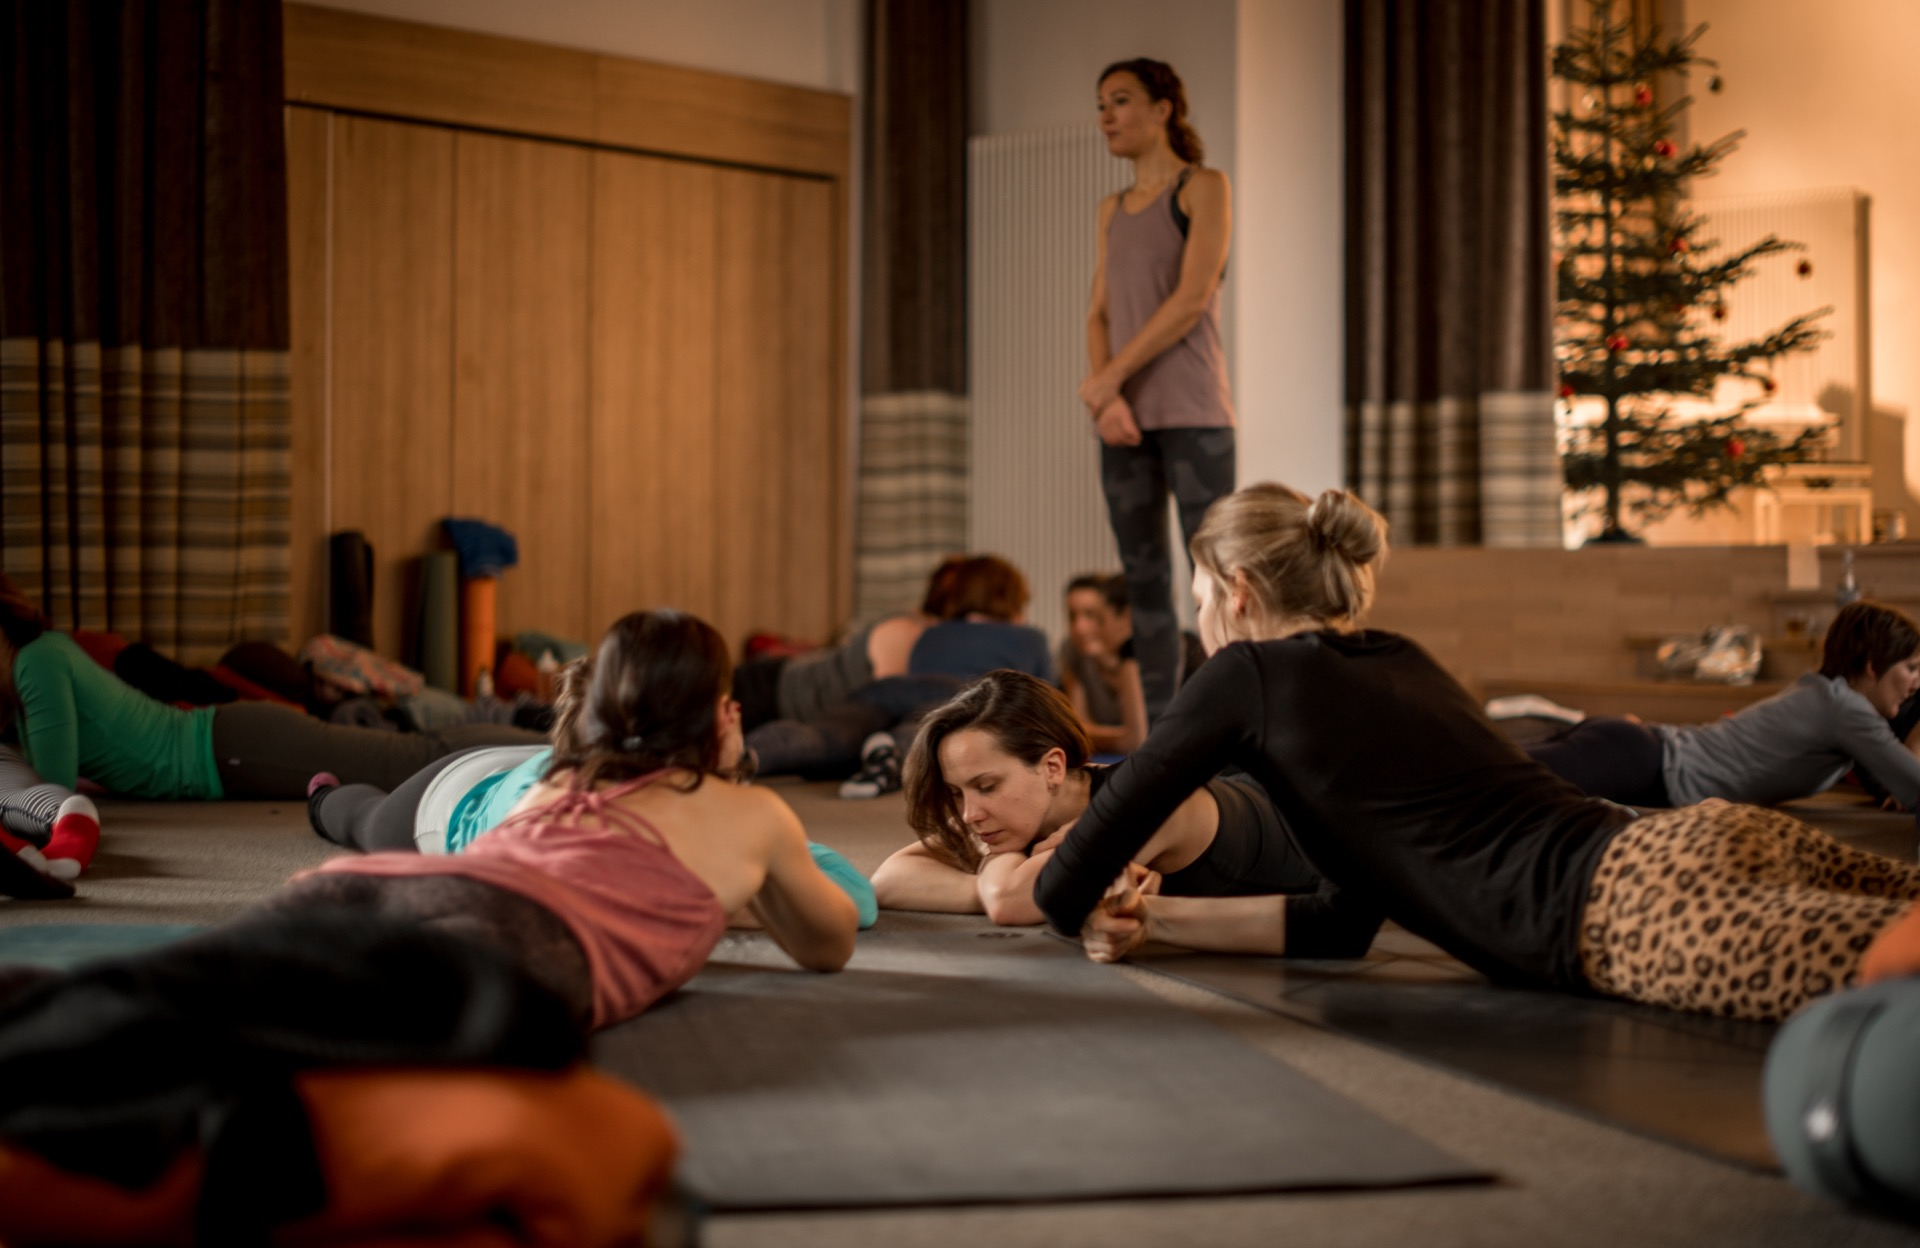 A-New-Beginning-Hie-Kim-Yoga-Retreat-Alina-Matis-Photography-010 - Hie Kim Yoga - Yoga Retreat - Yoga Workshops und Reisen